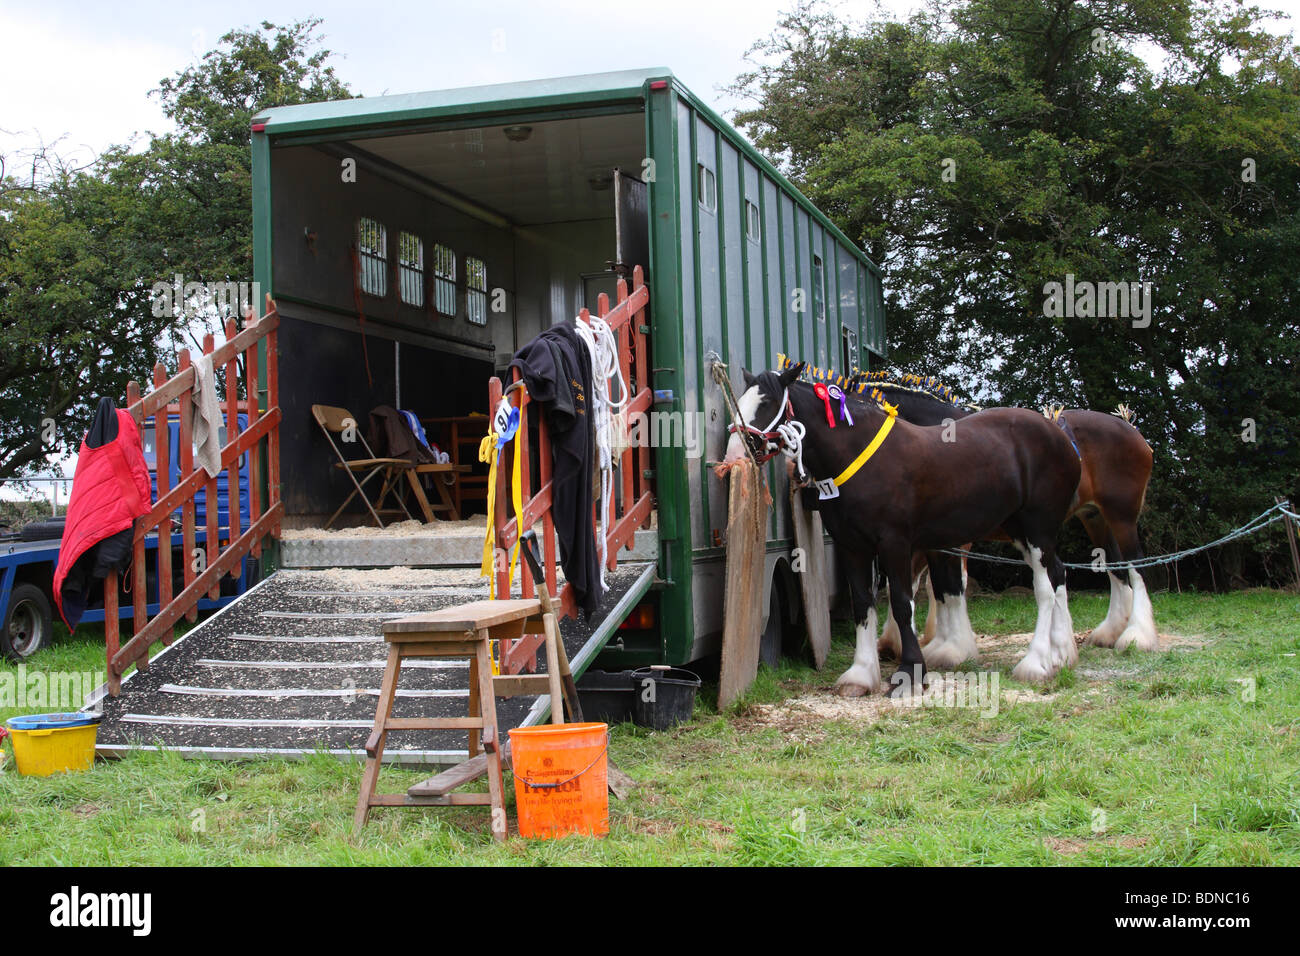 Horses tethered to a horse box at the Moorgreen Show, Moorgreen, Nottinghamshire, England, U.K. - Stock Image